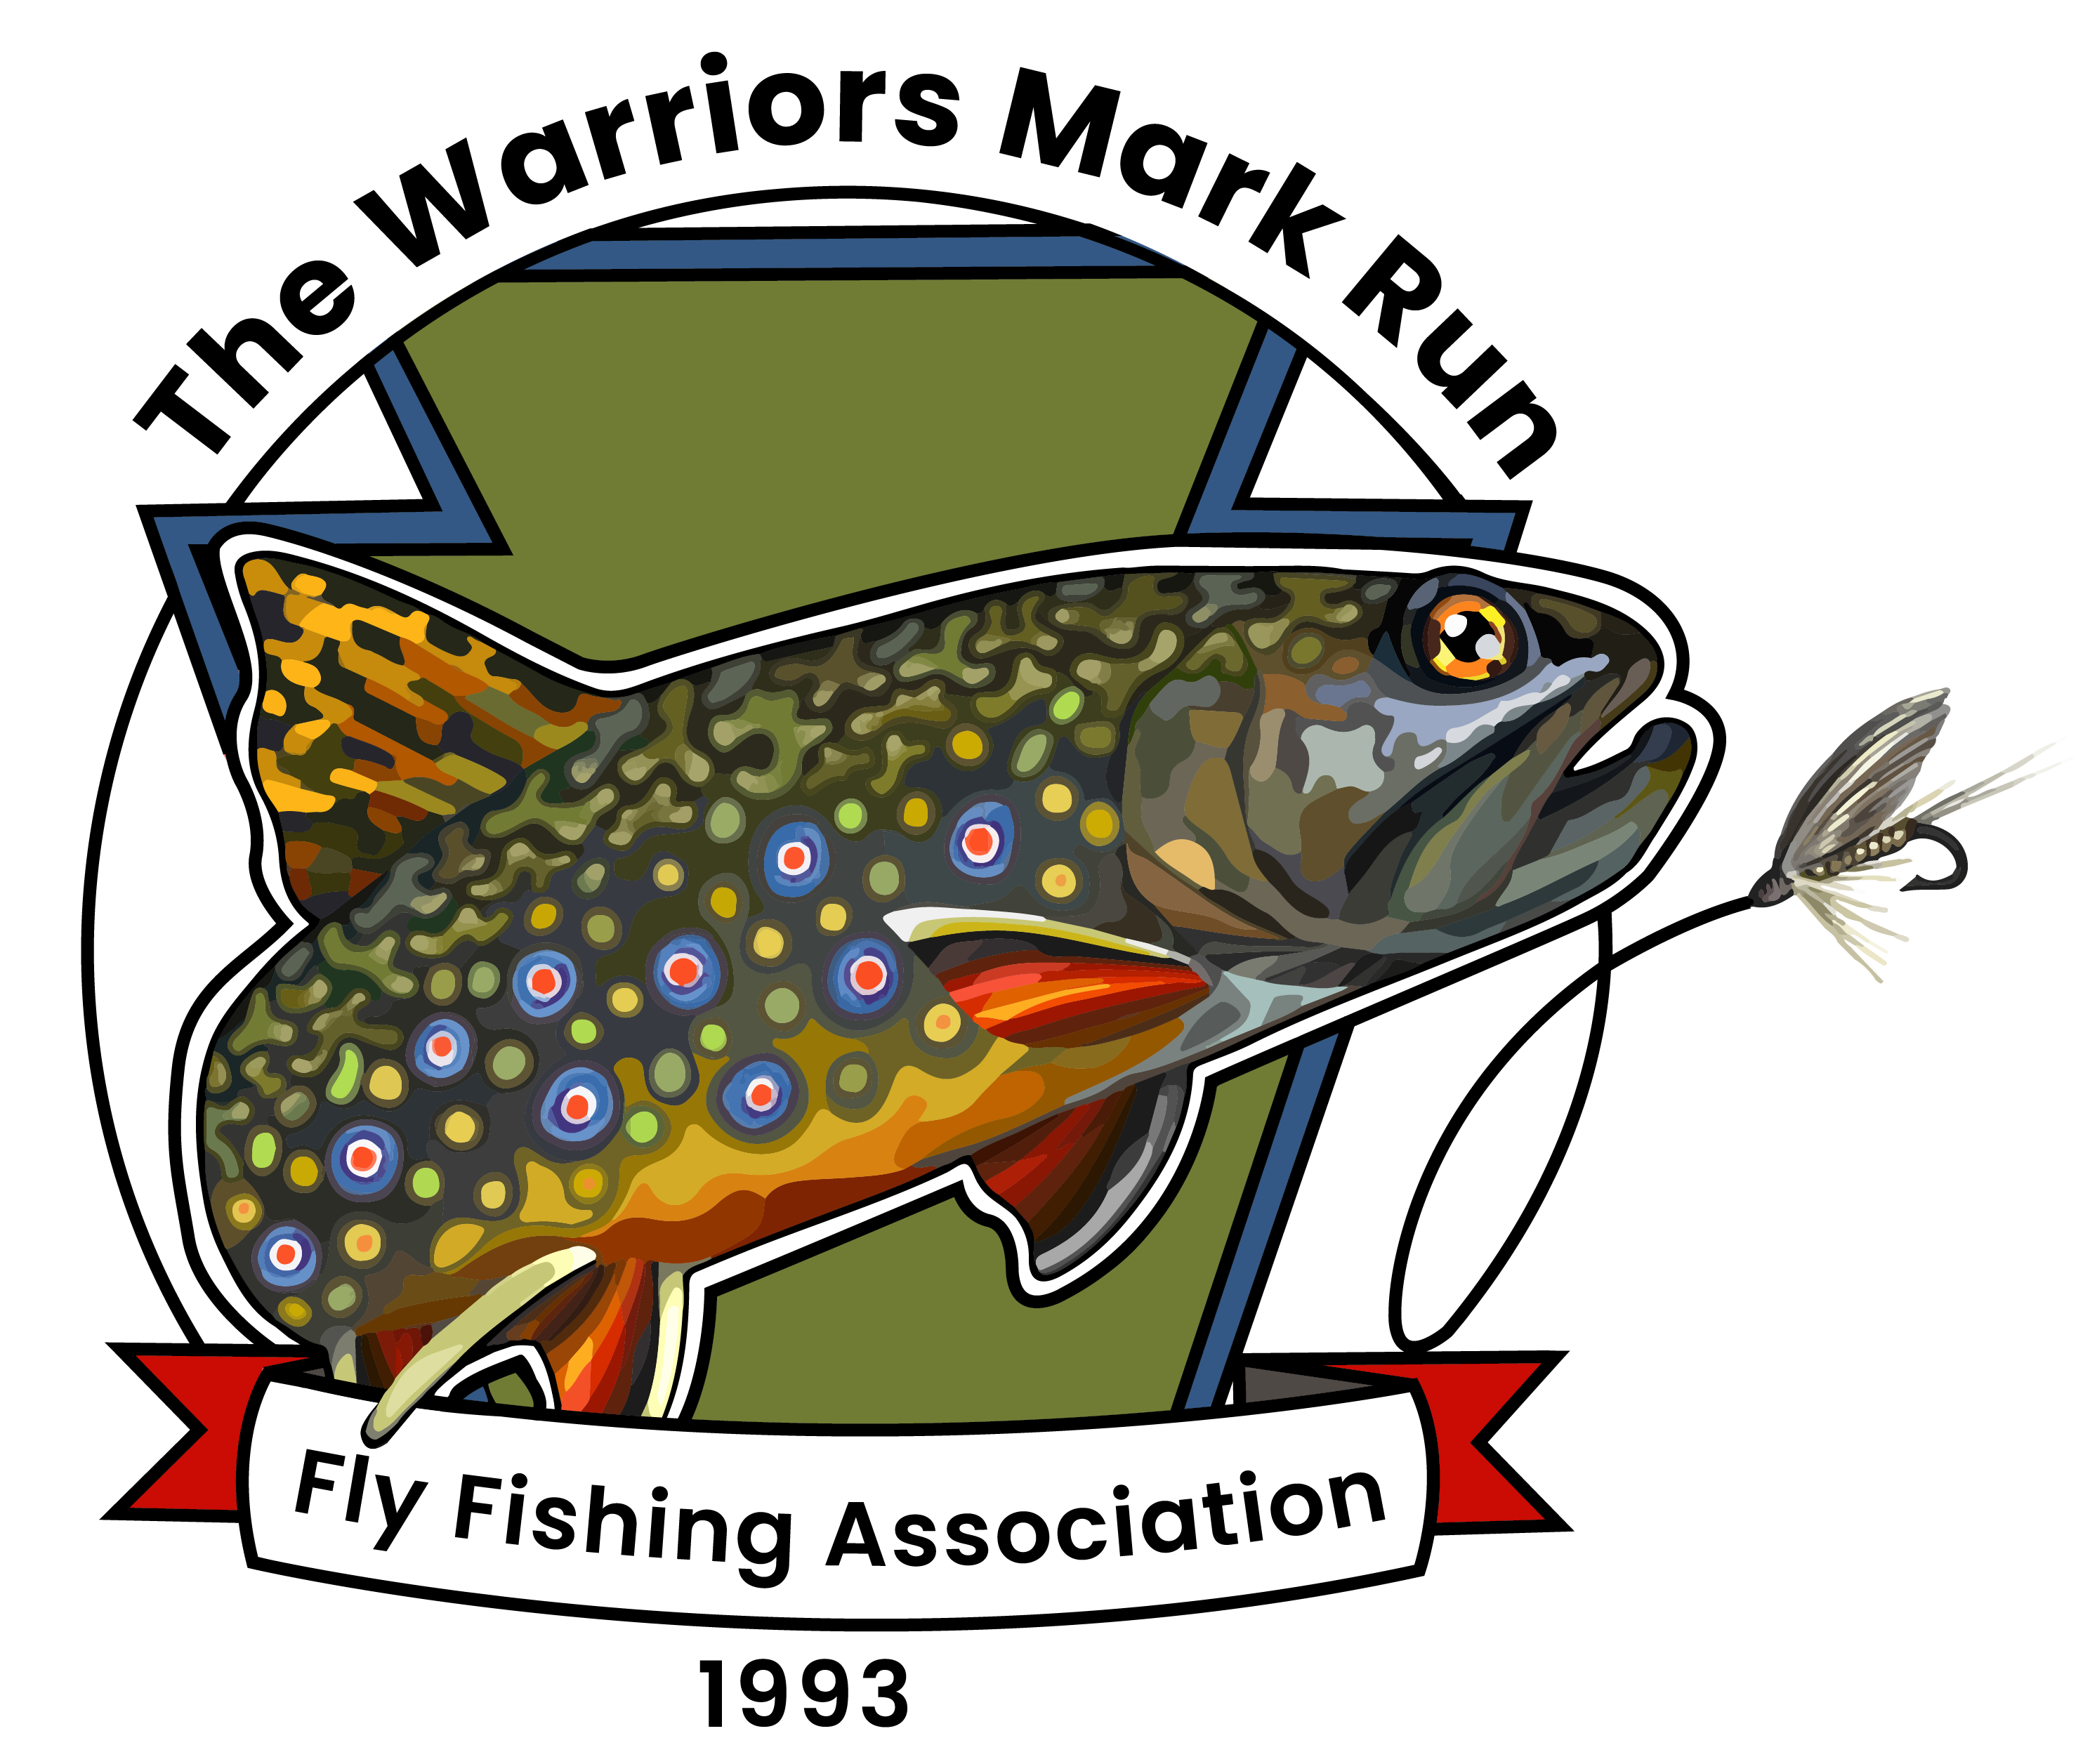 Logo for Fly fishing association, graphic depiction of fish going after fly